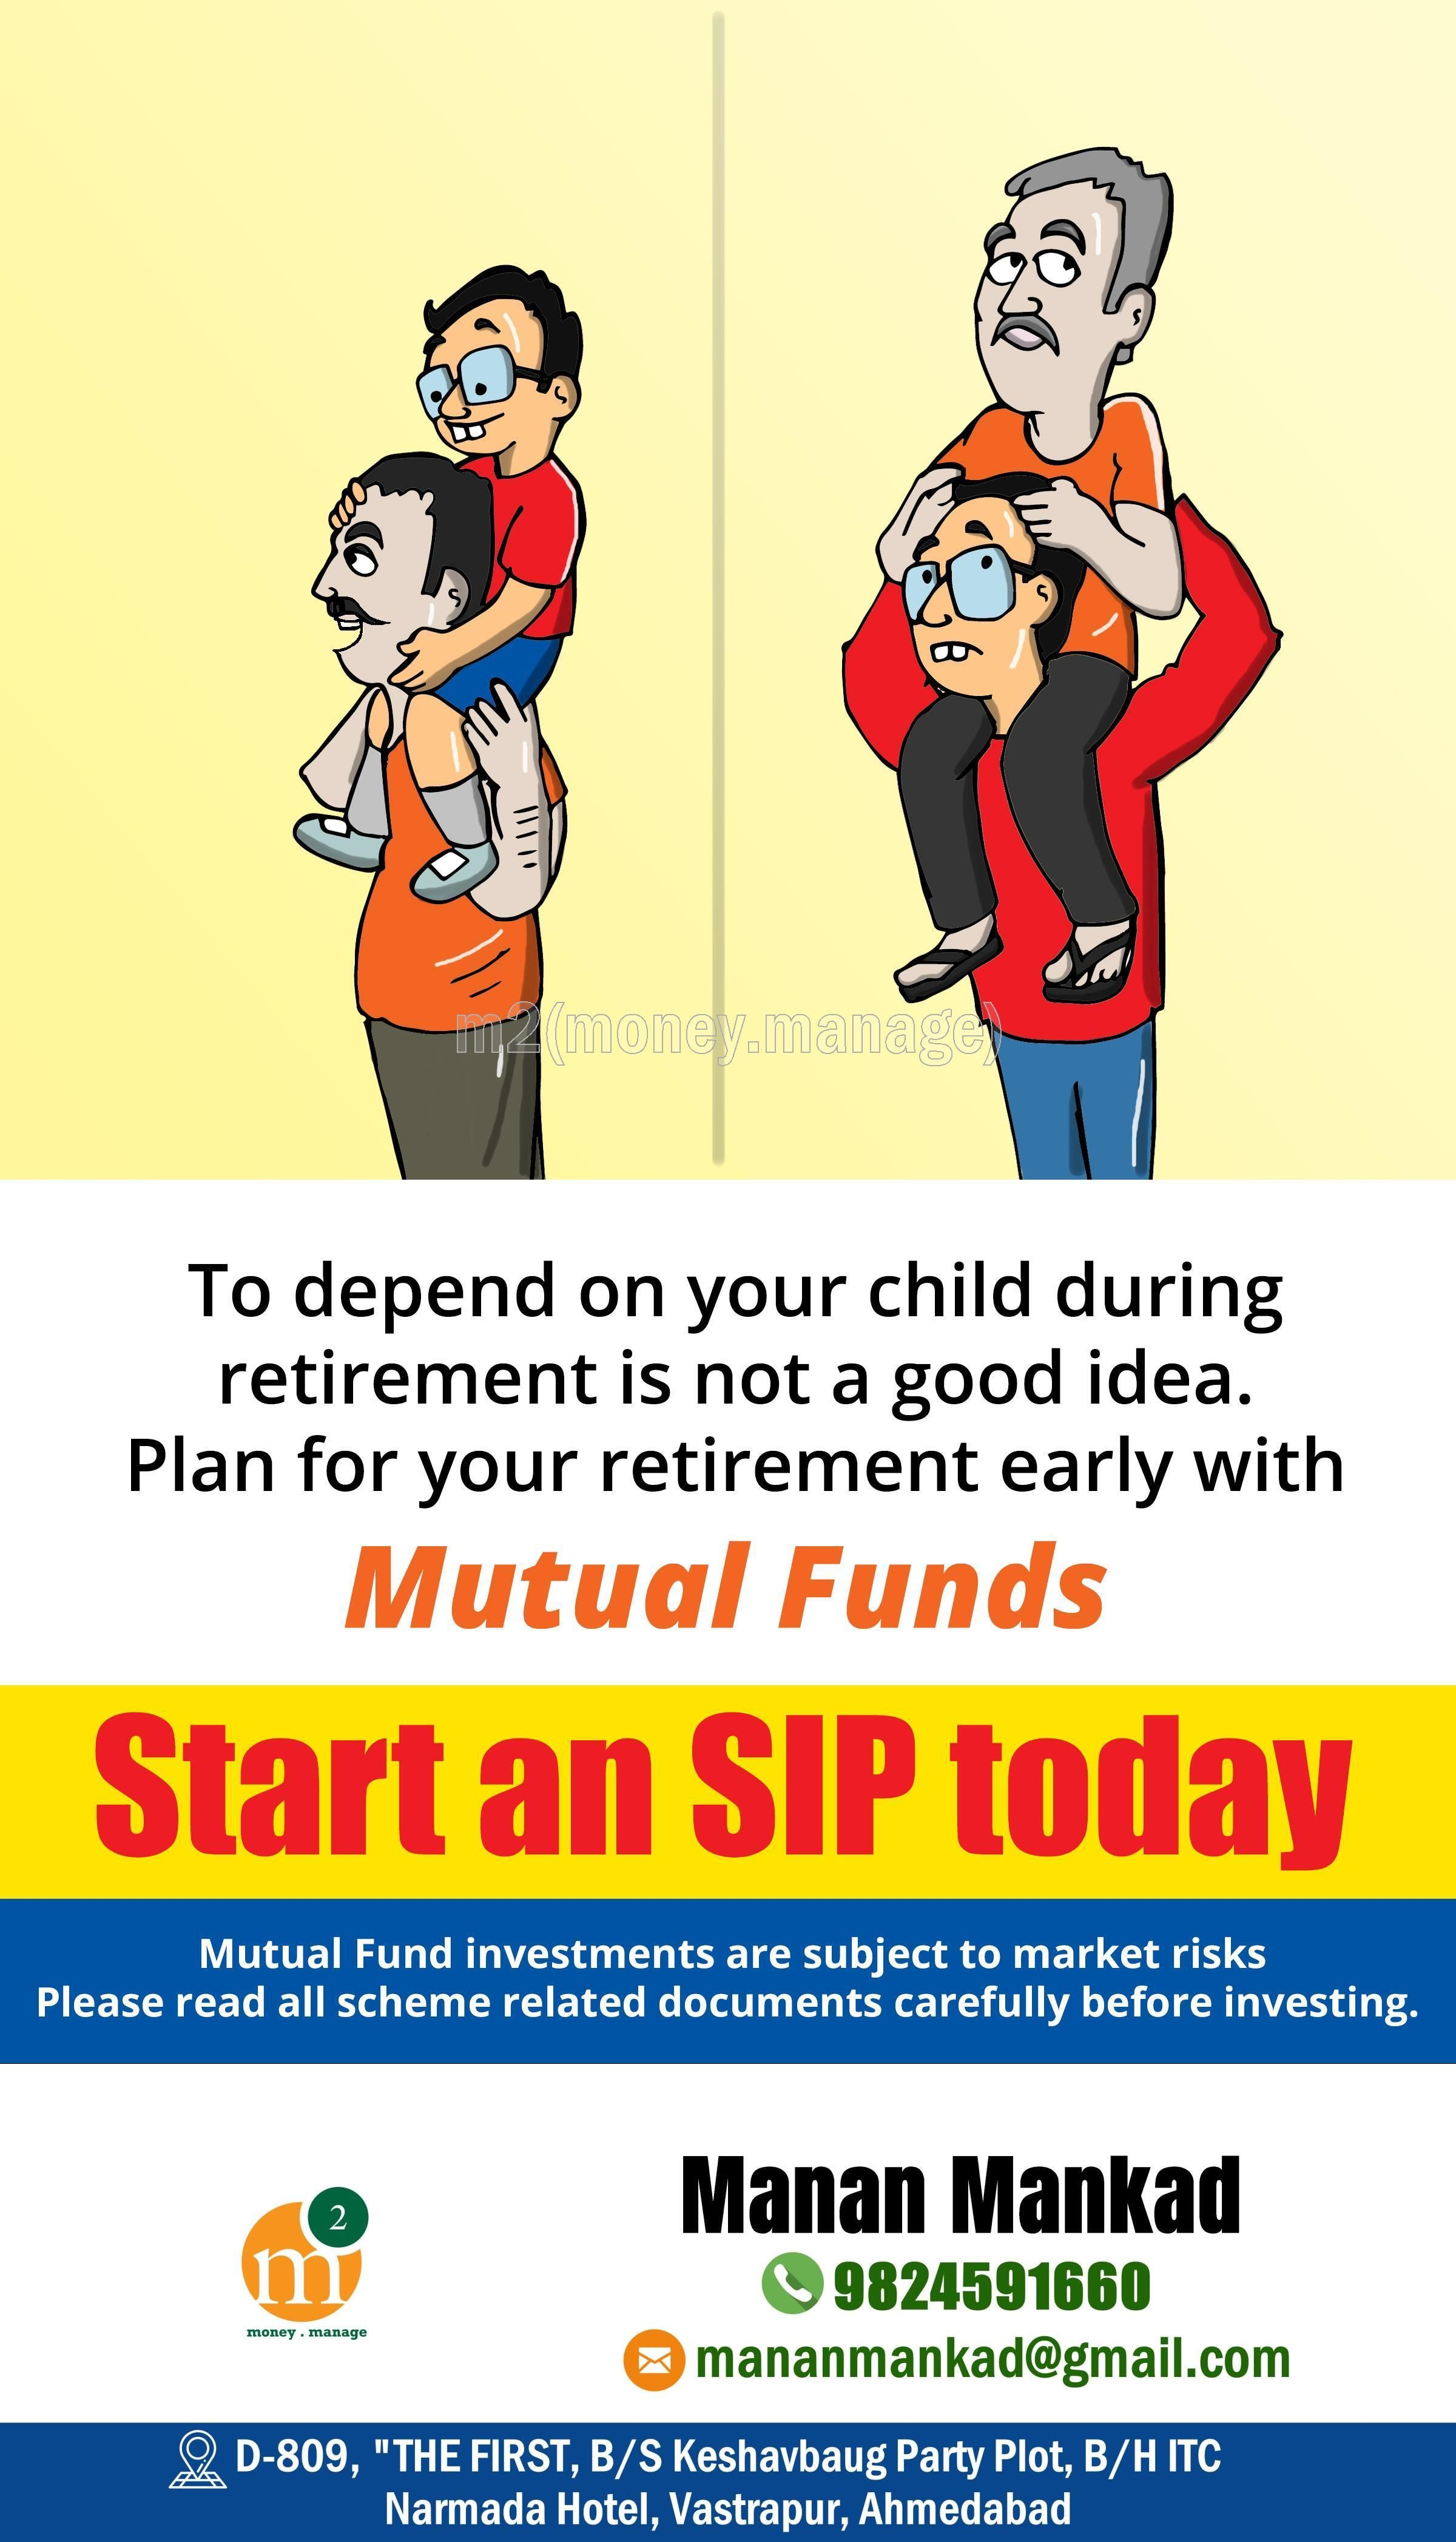 Mutualfunds Life Insurance Quotes Financial Advisors